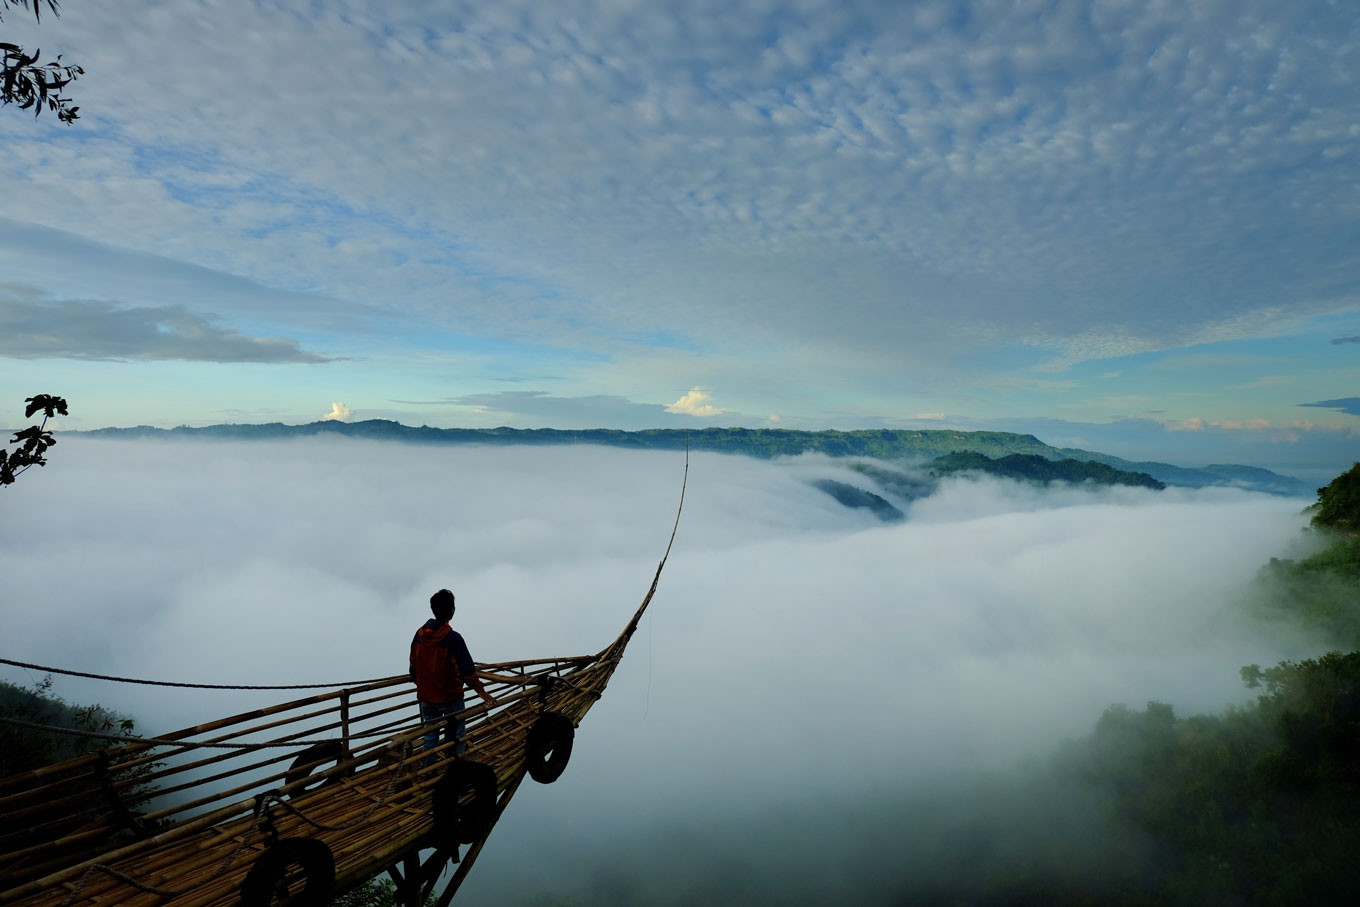 Head in the clouds at Yogyakarta's clifftop tourist spot, Jurang Tembelan